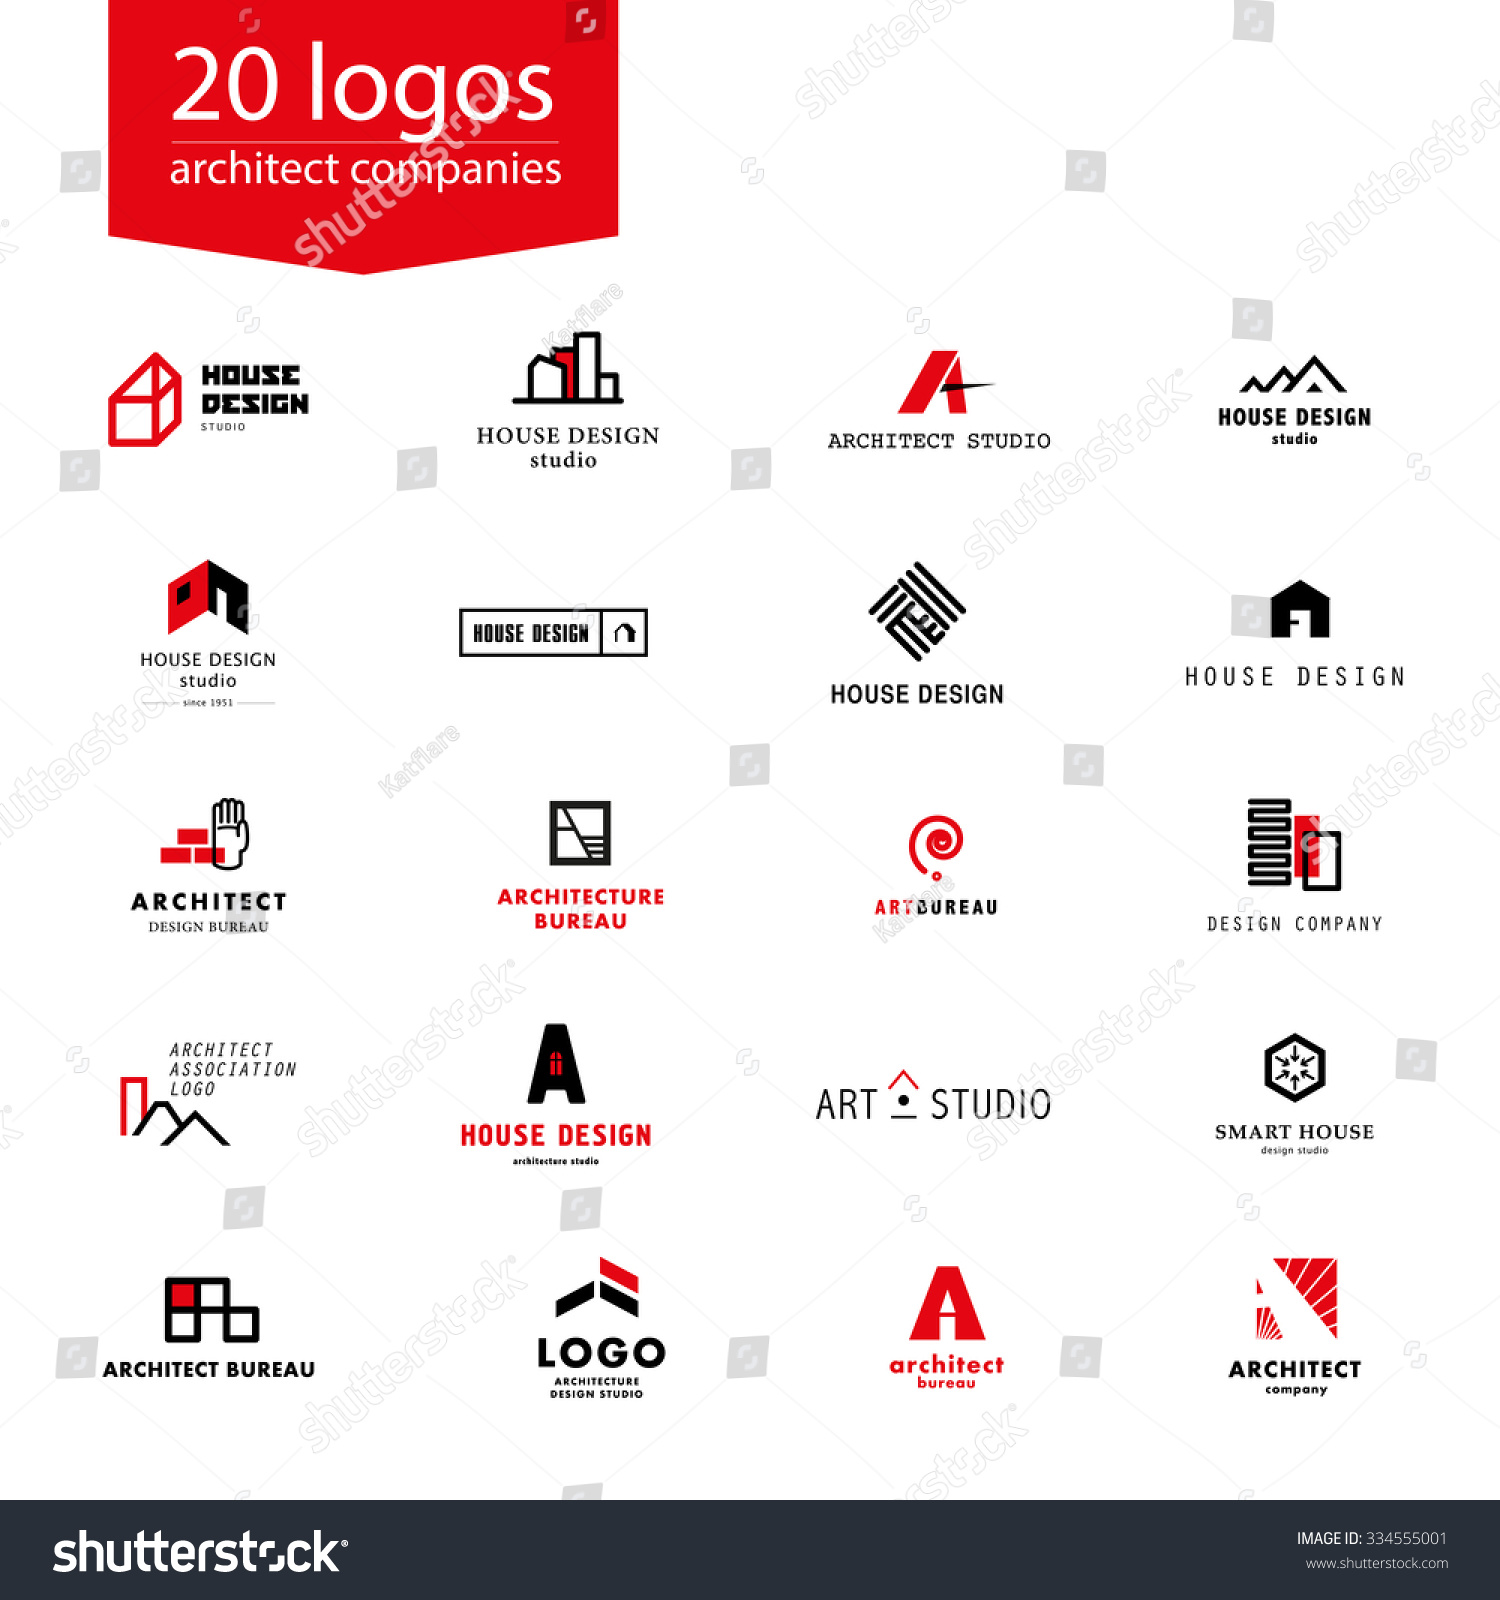 Architect Company vector flat architecture company logo collection stock vector